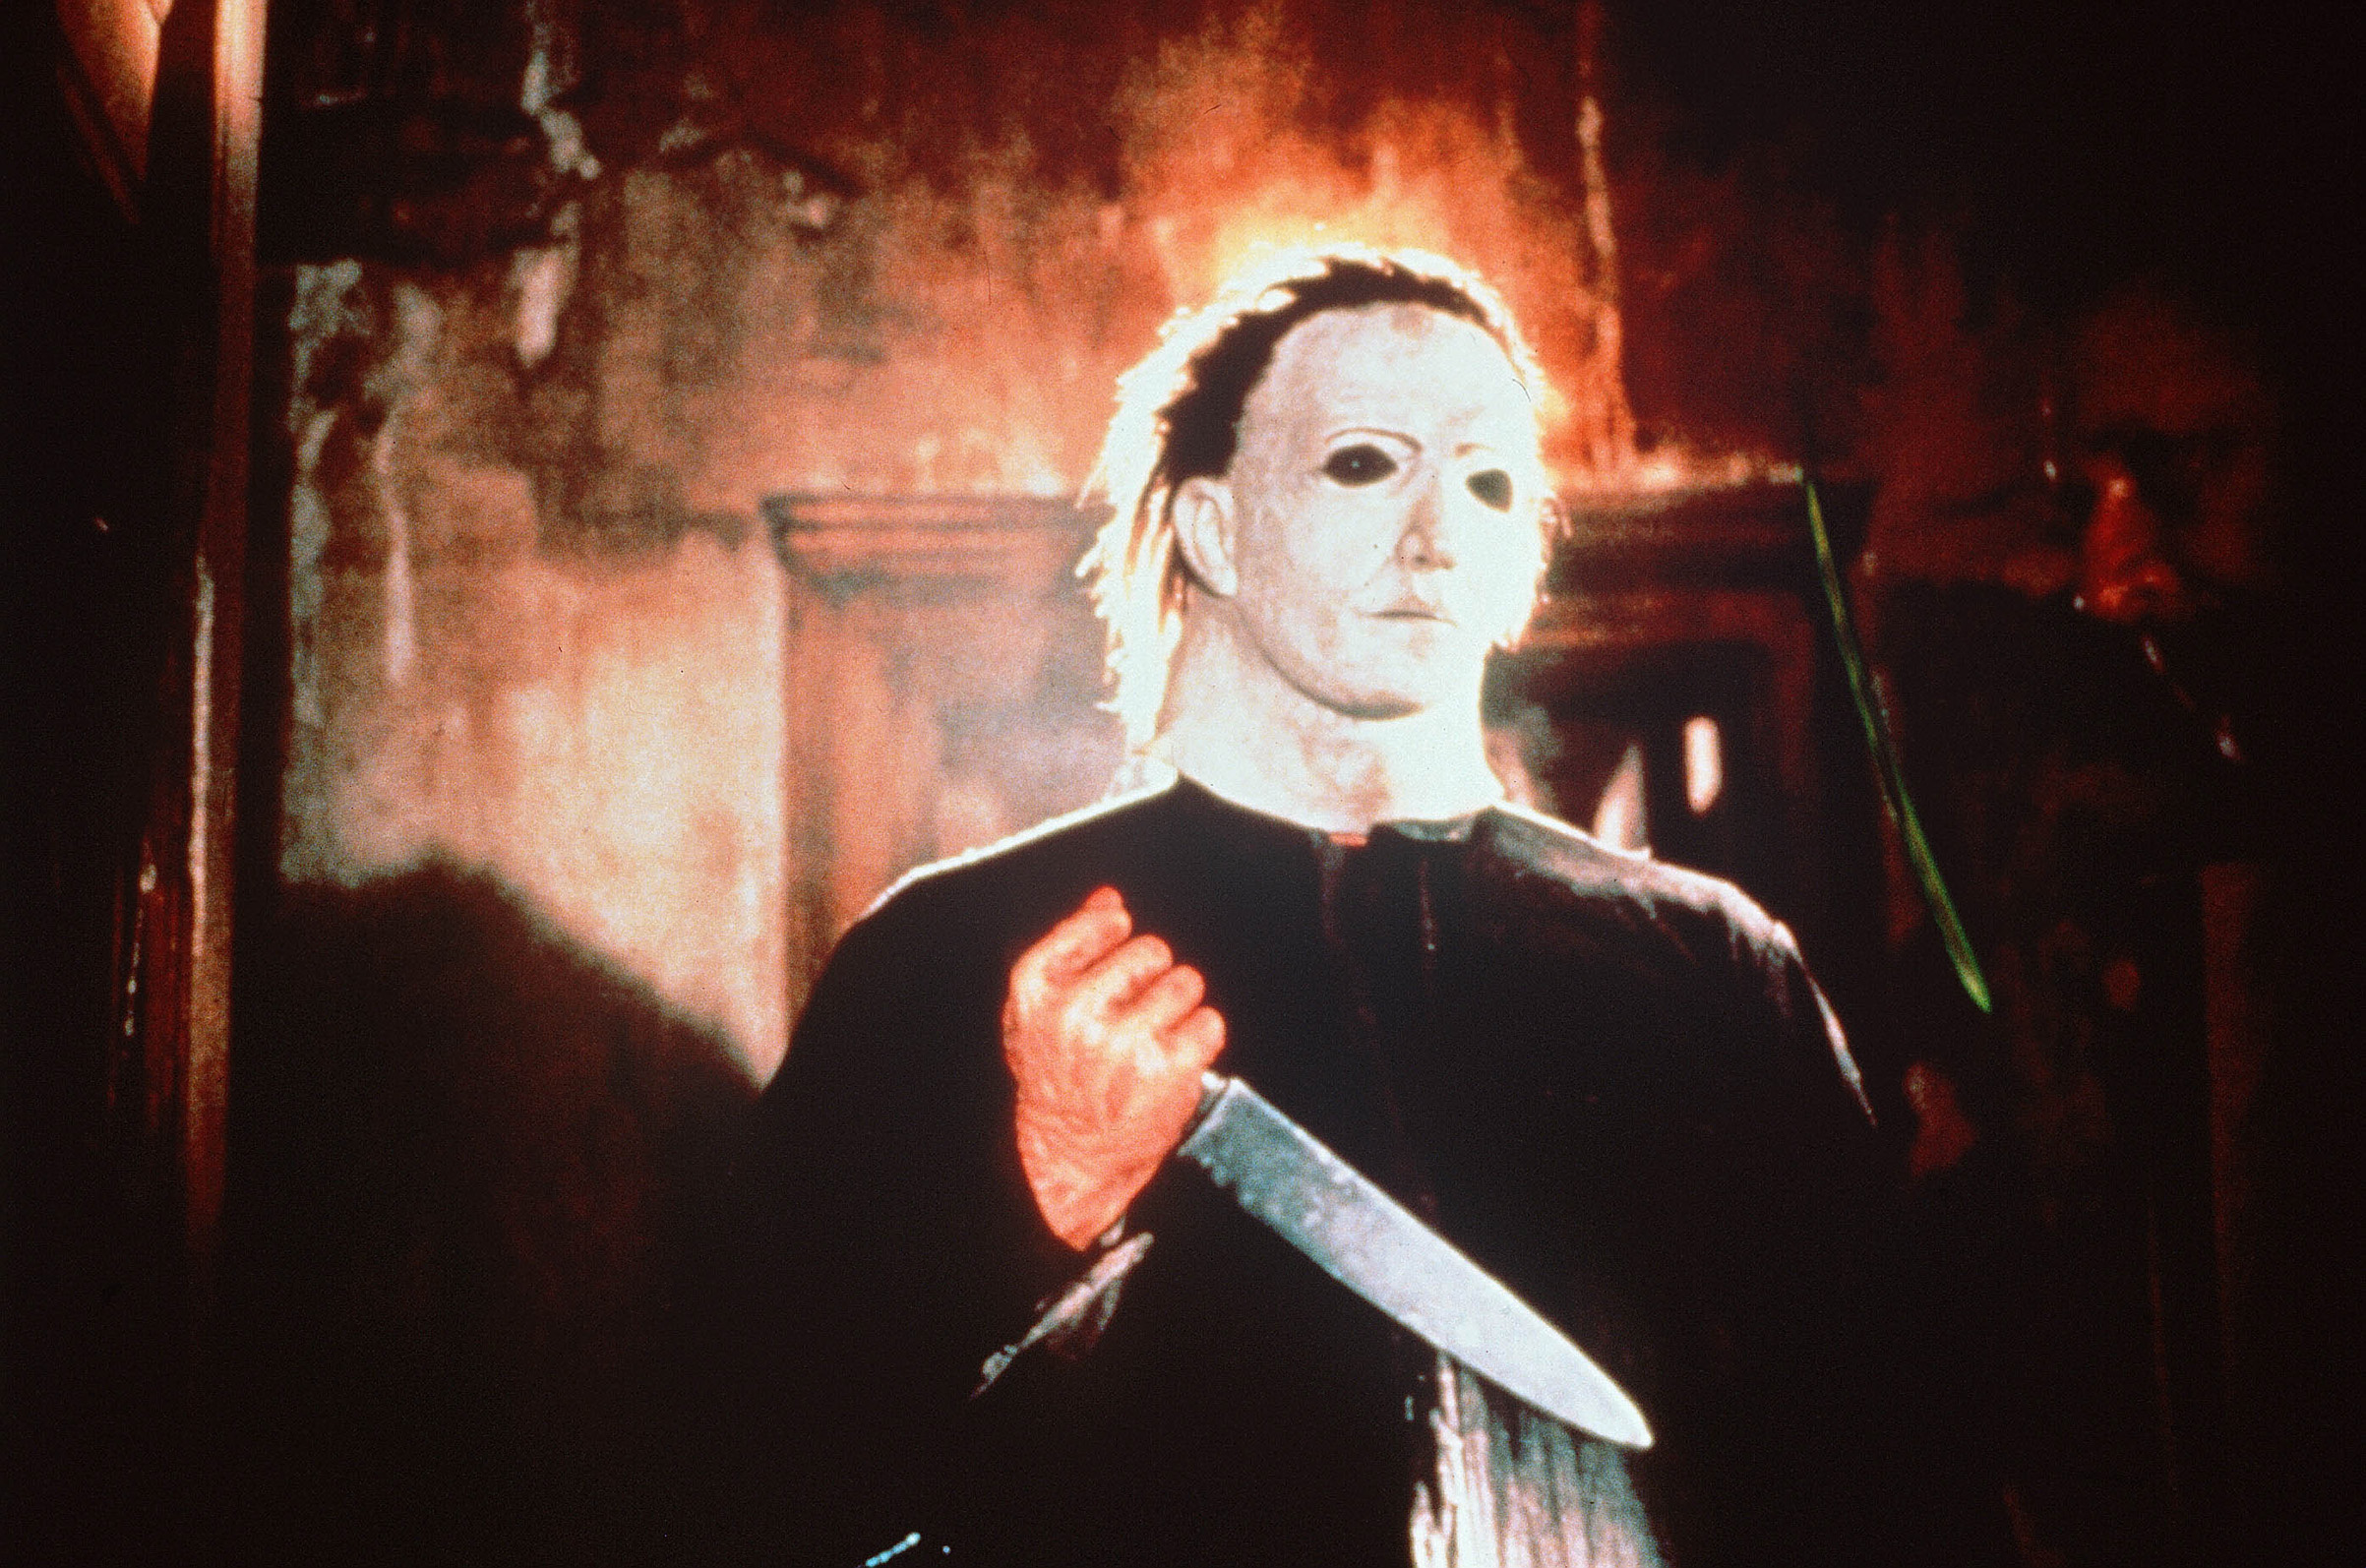 Donald L. Shanks as Michael Myers in  Halloween 5: The Revenge of Michael